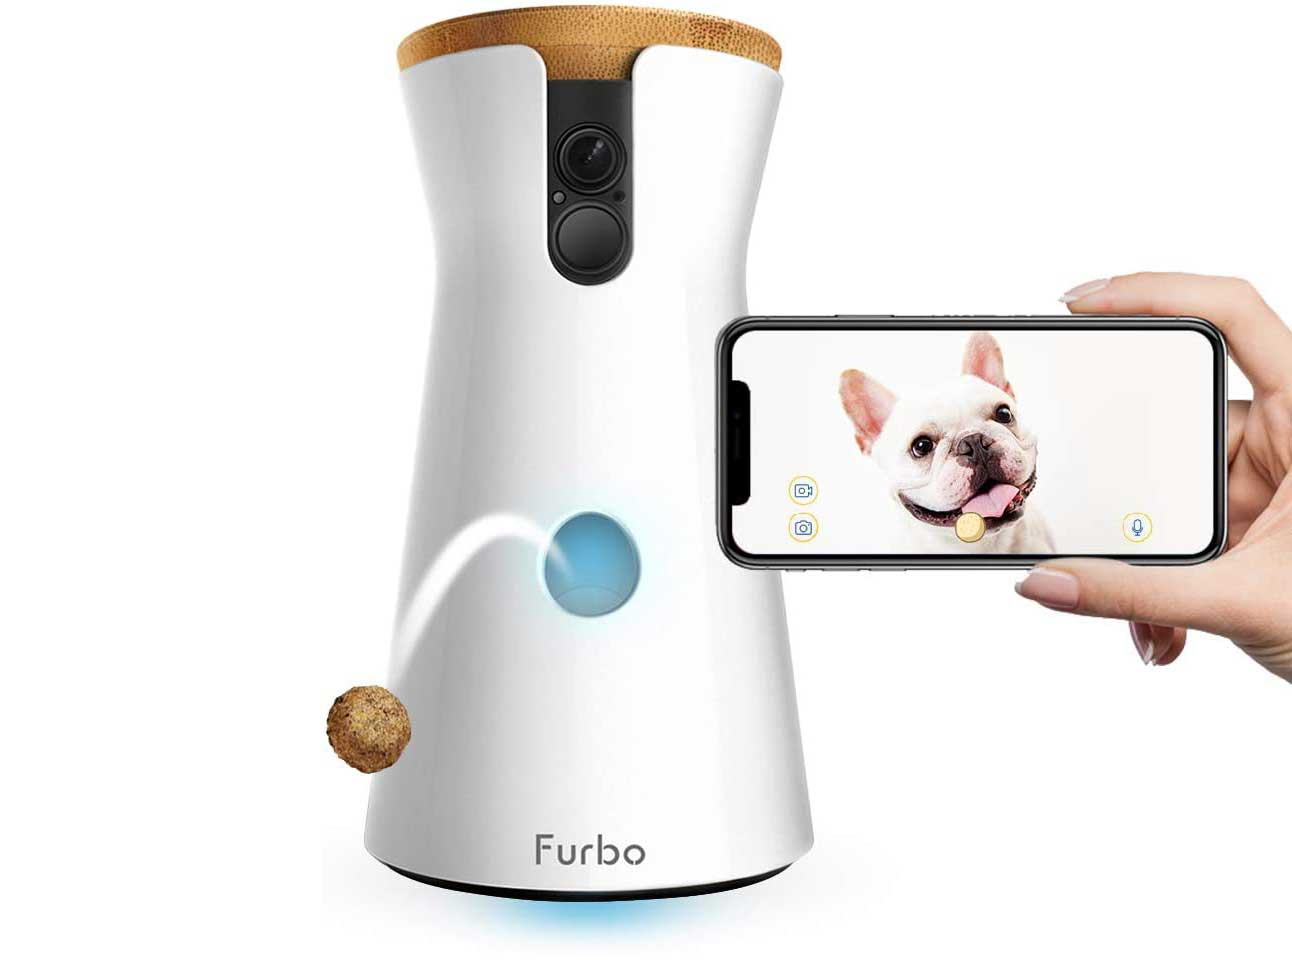 Furbo Dog Camera: Treat Tossing, Full HD Wifi Pet Camera and 2-Way Audio, Designed for Dogs, Compatible with Alexa (As Seen On Ellen)